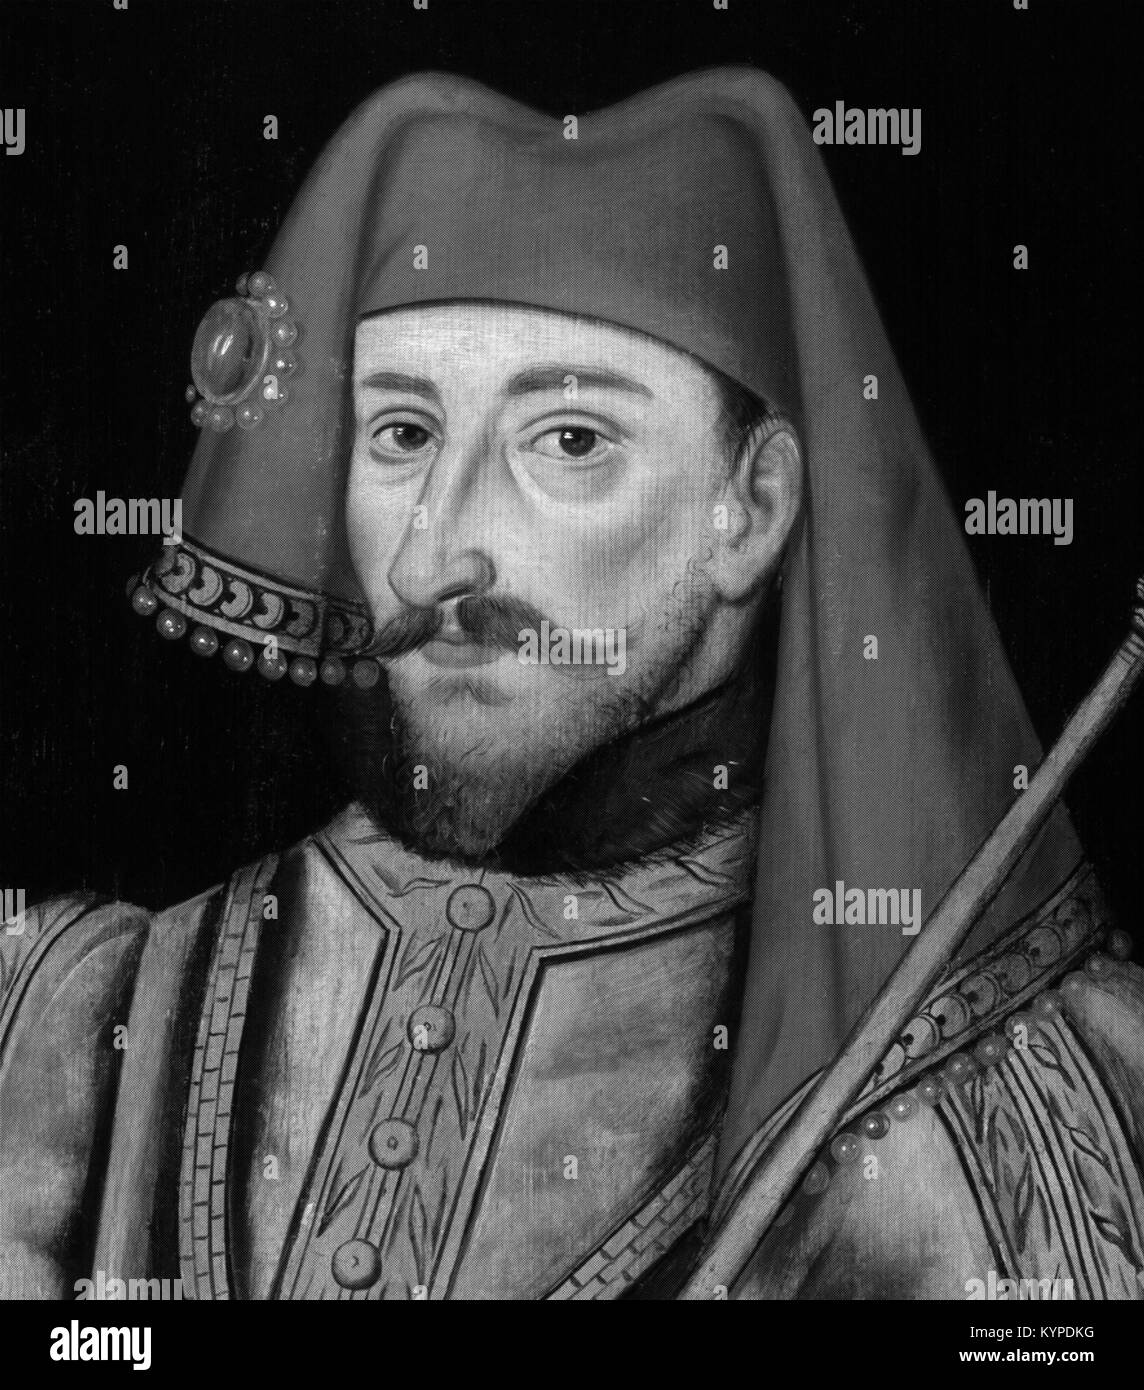 King Henry IV of England (1367-1413), who reigned from 1399 to 1413 - Stock Image